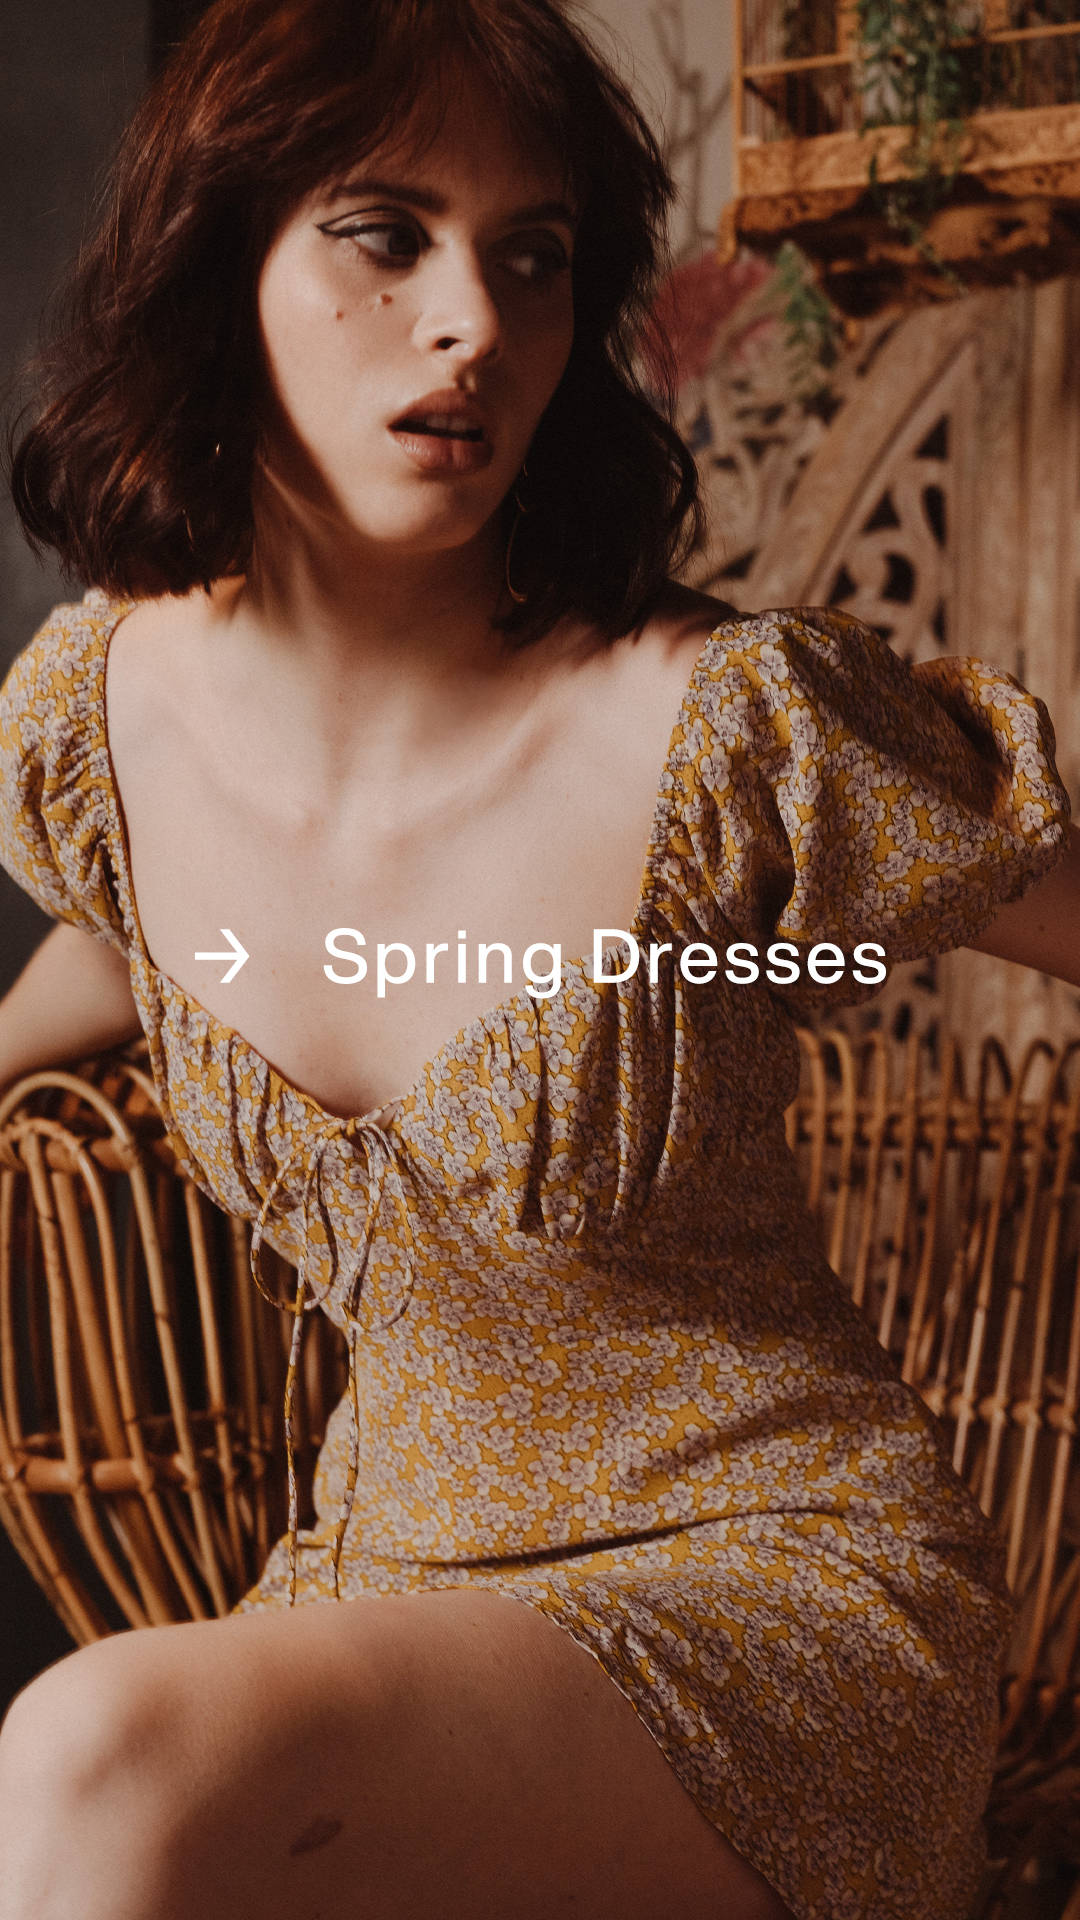 Spring Dresses: Warm weather & sunshine are here.